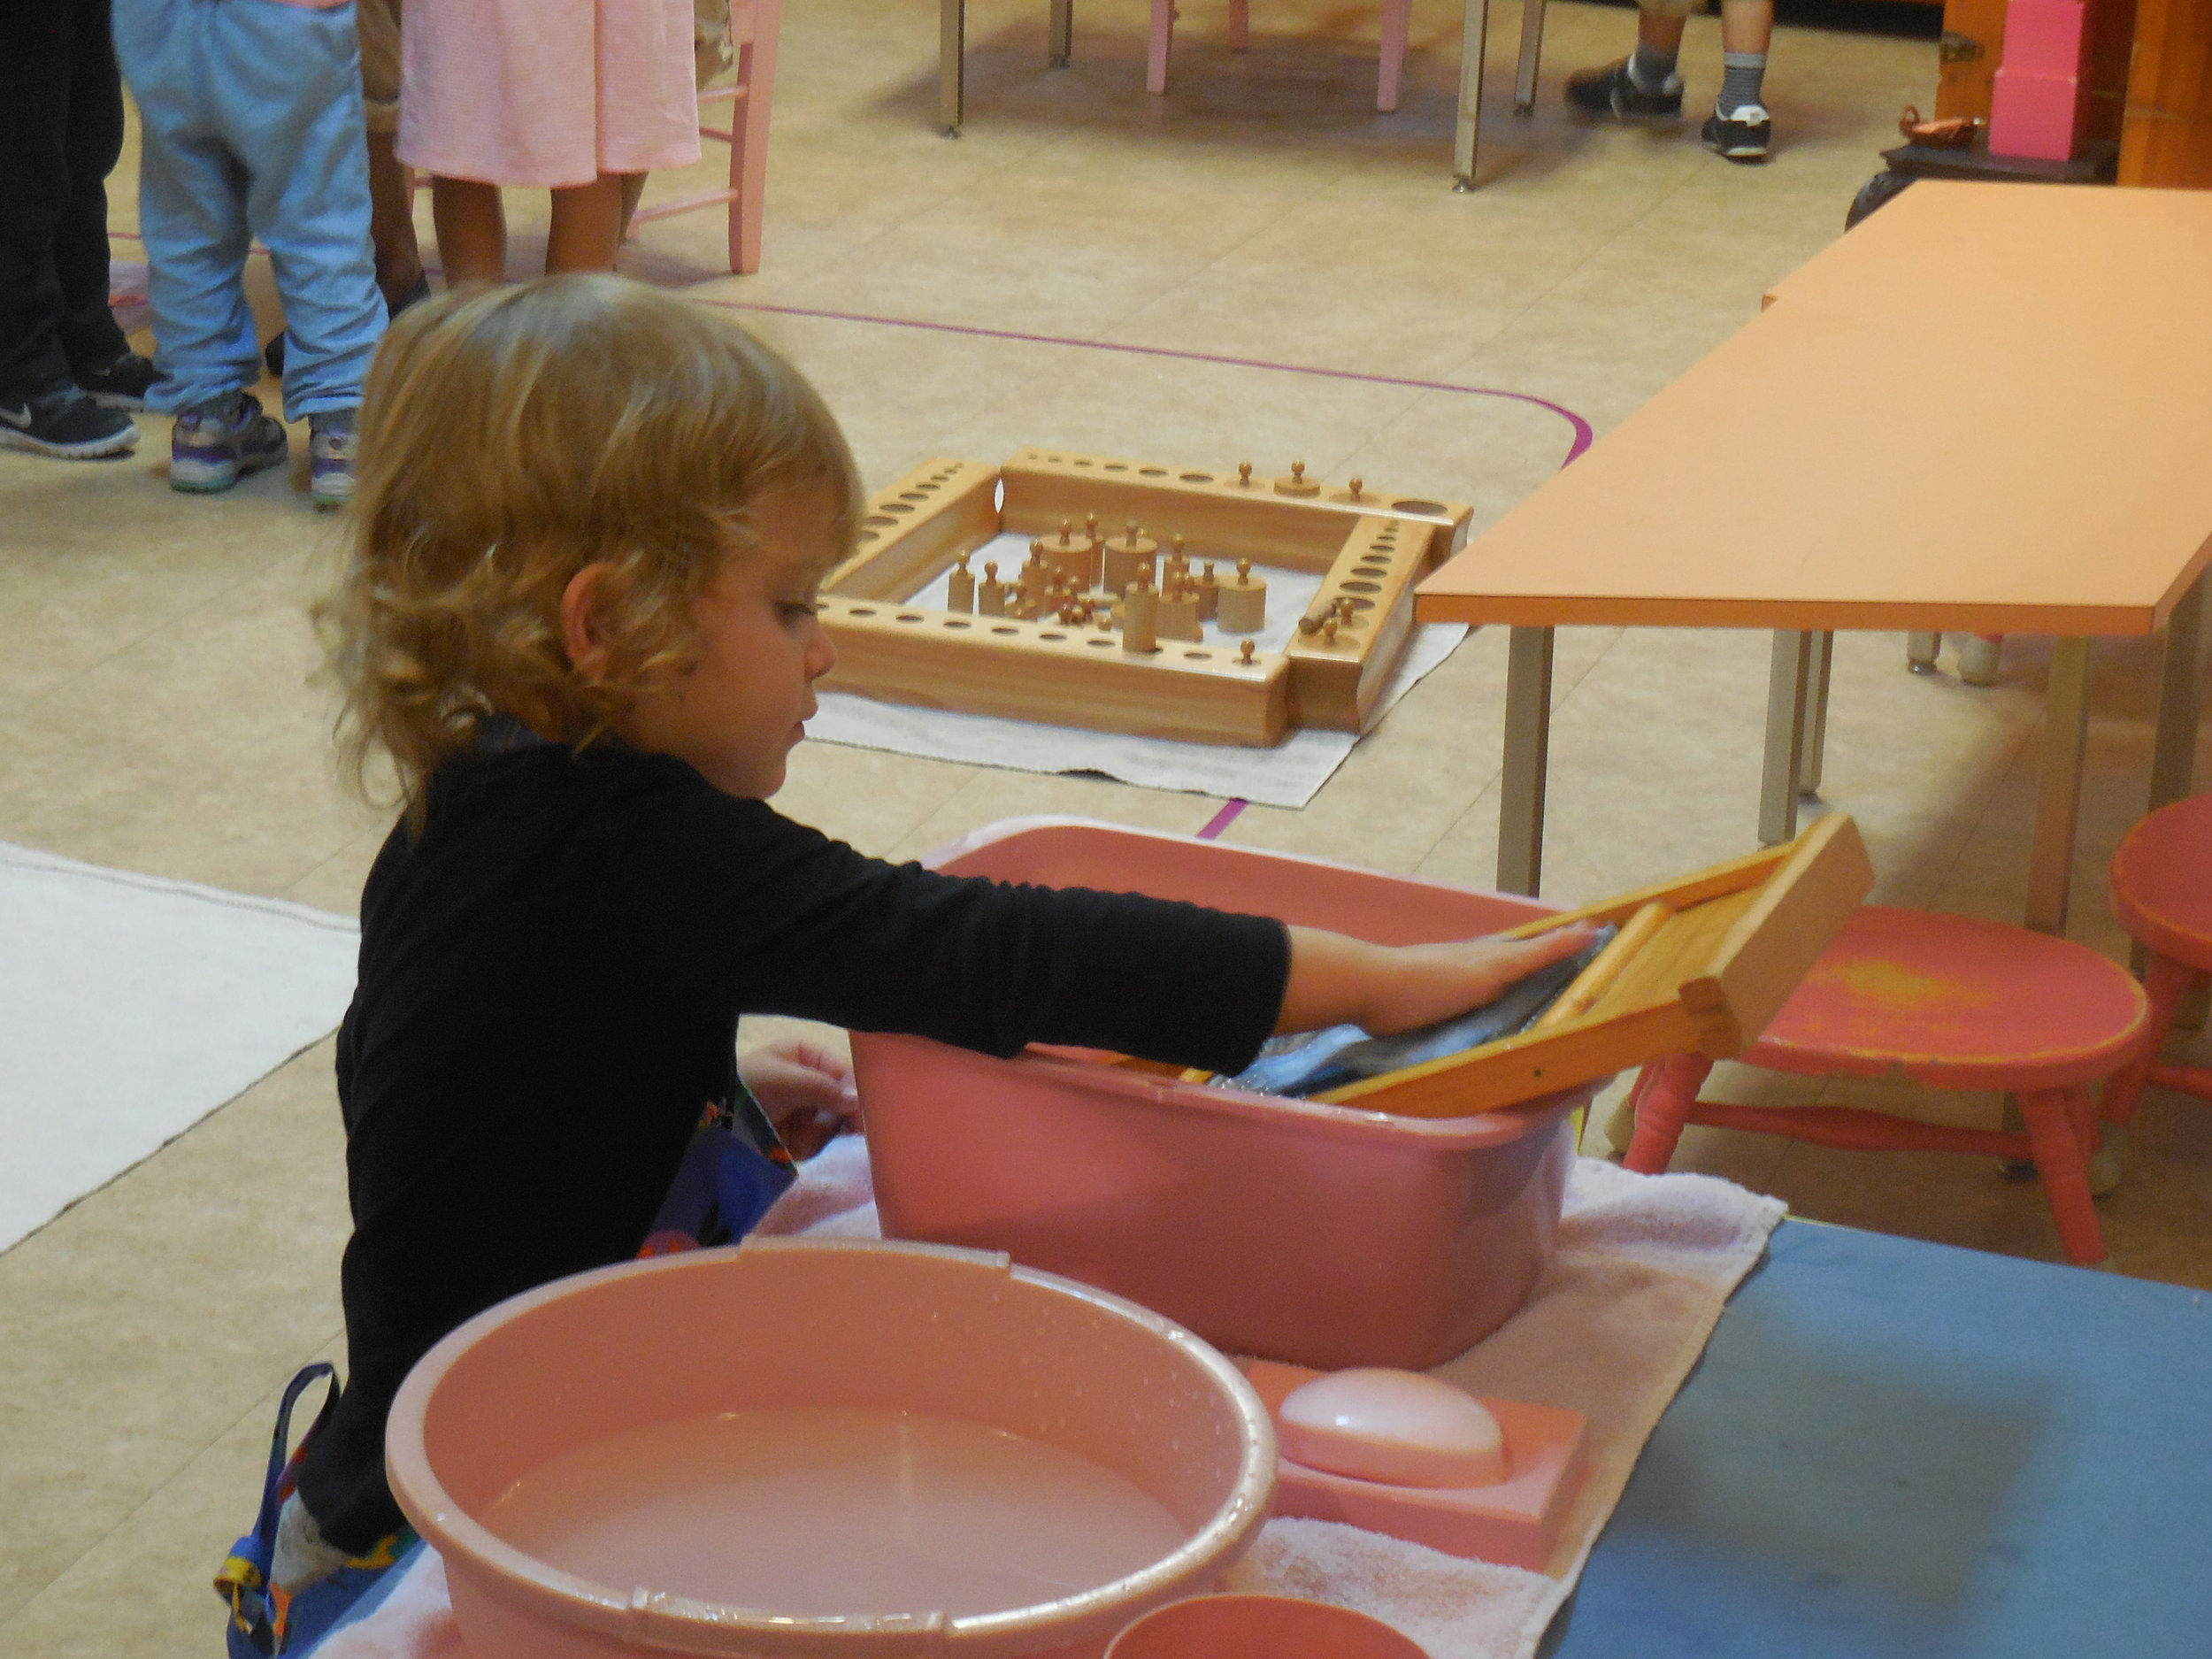 Montessori at work 5.JPG